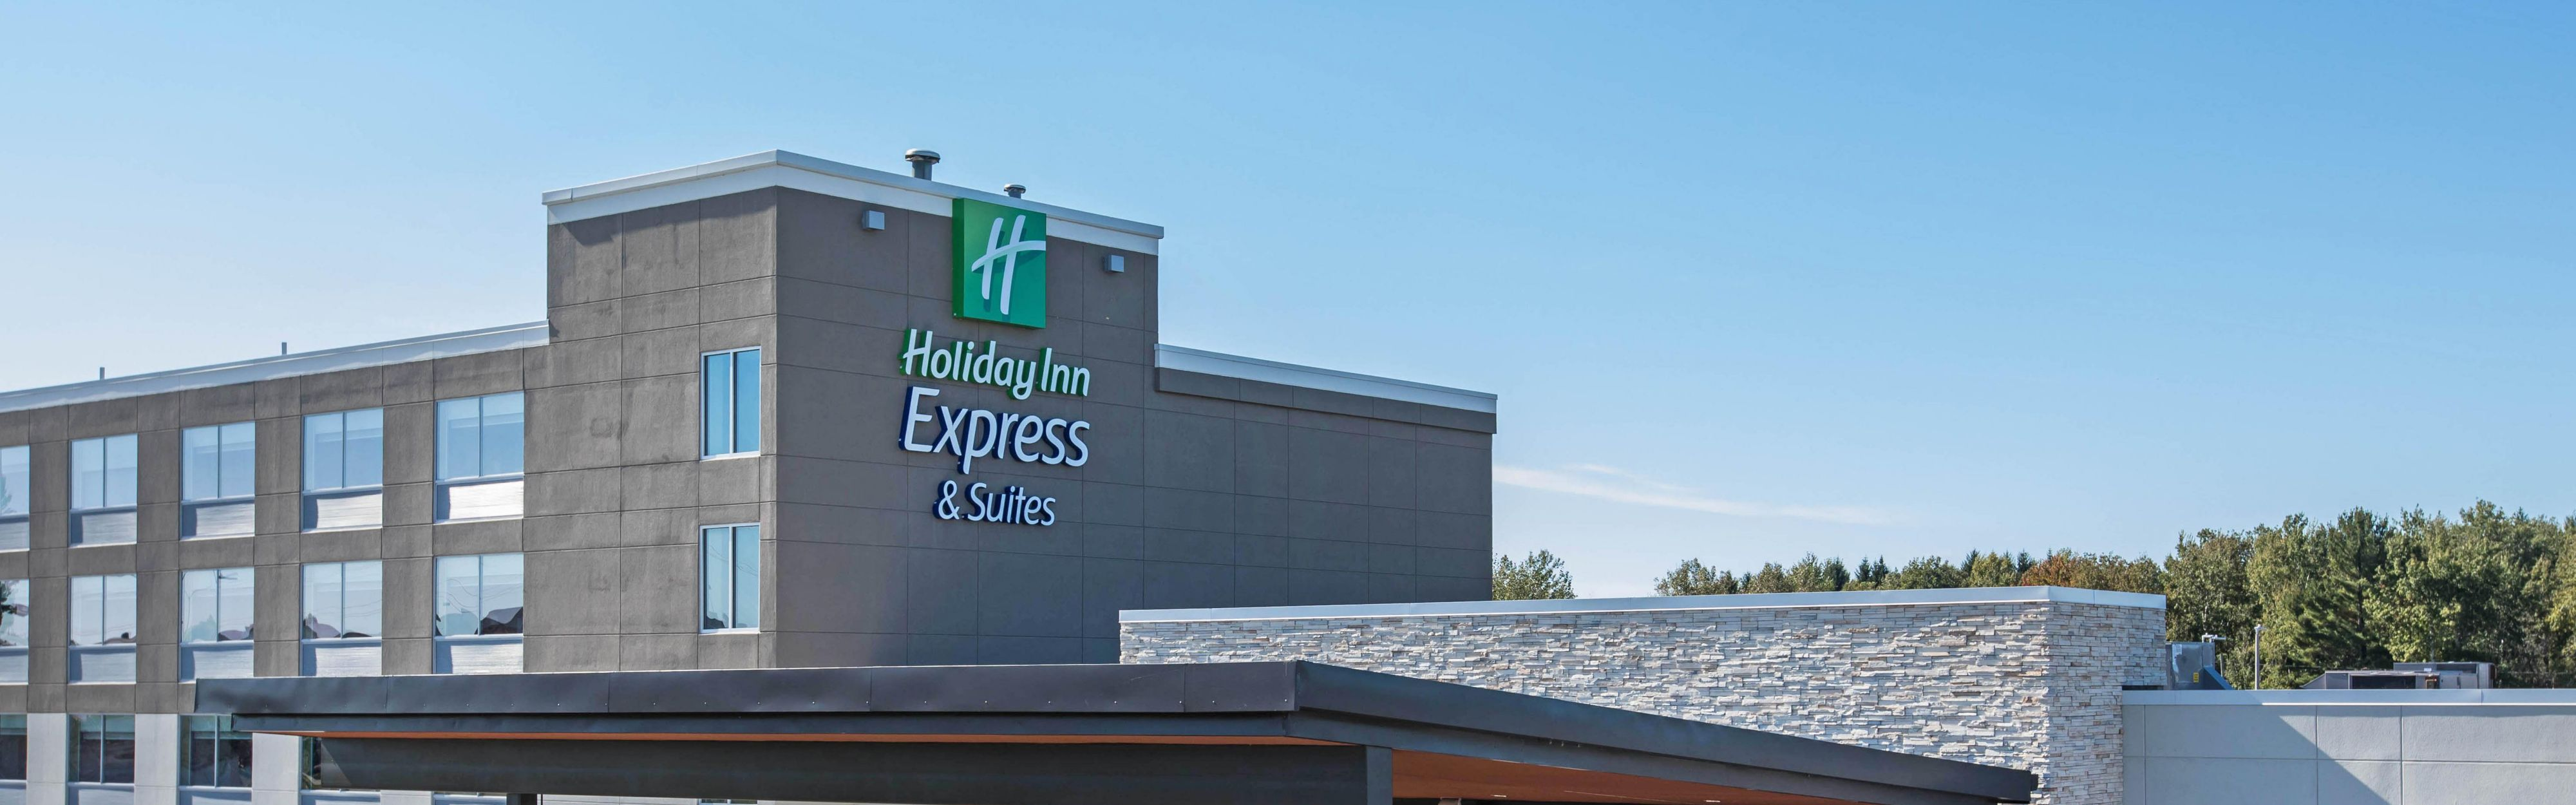 Holiday Inn Express & Suites Ludington image 0